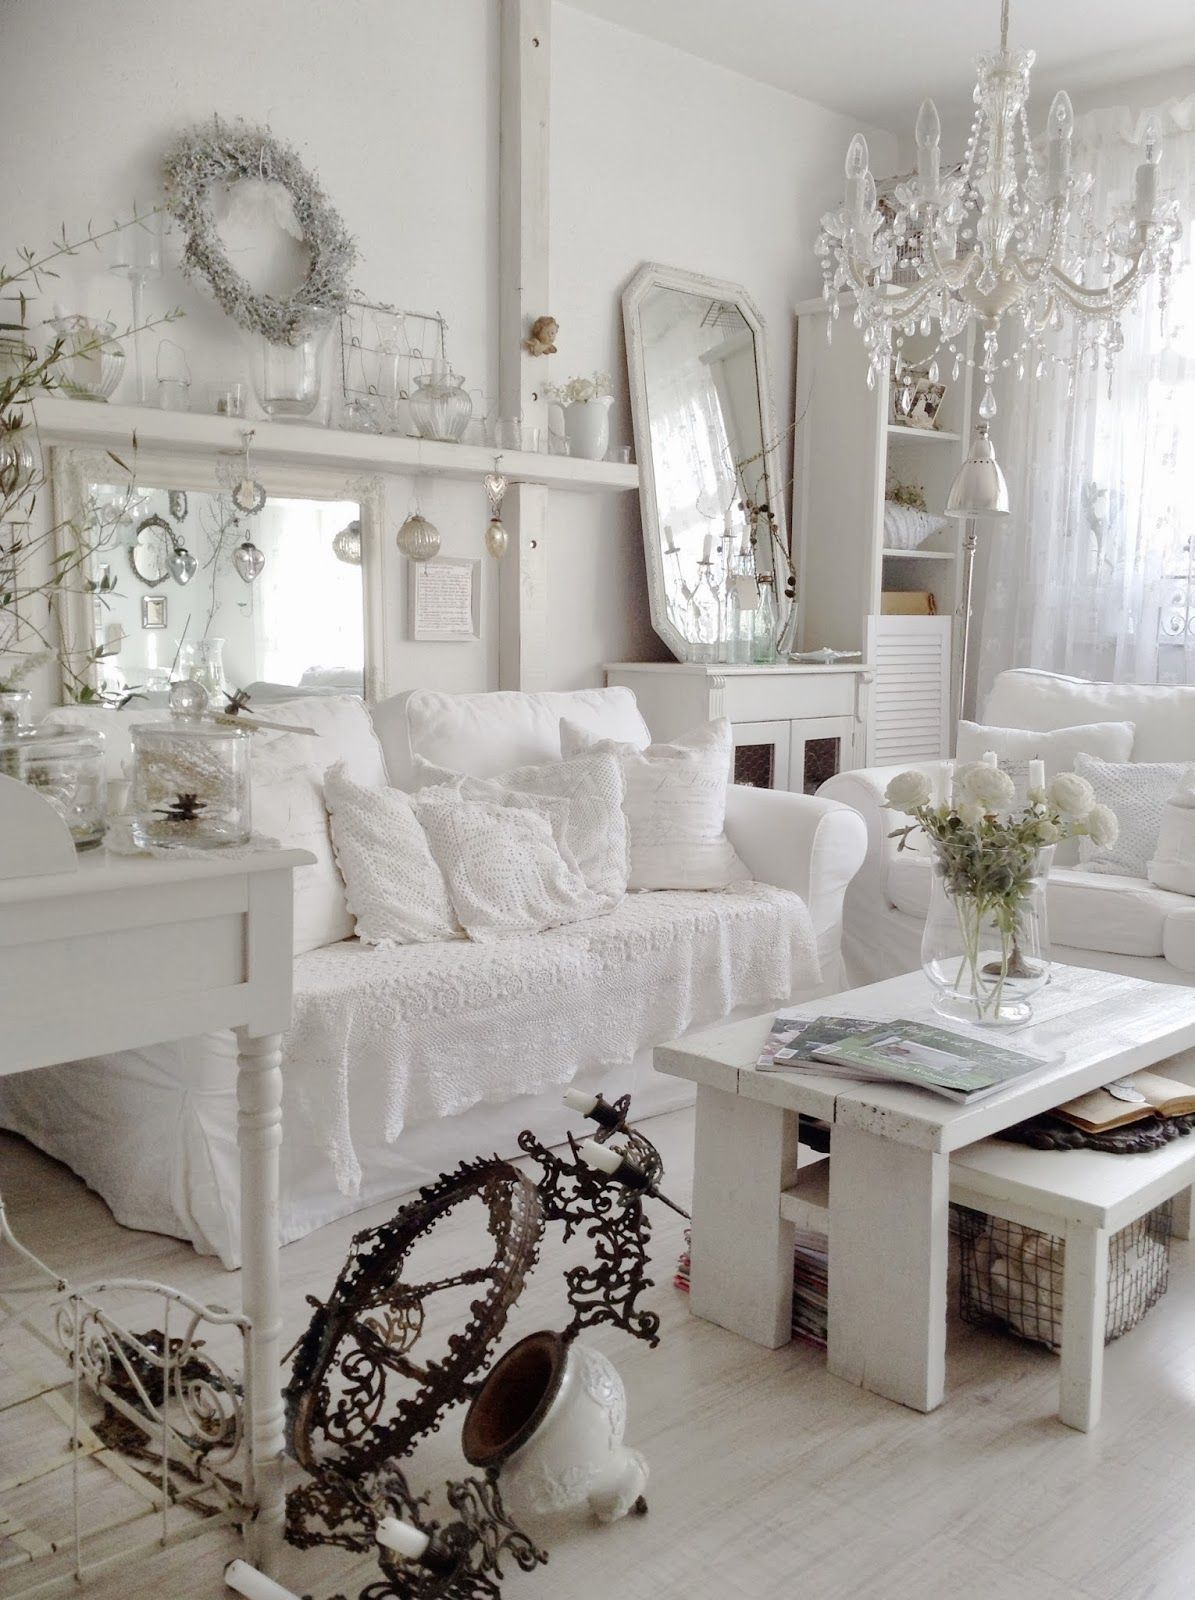 vertraeumtes stadthaus kleiner einblick in unser wohnzimmer shabby boho pinterest maison. Black Bedroom Furniture Sets. Home Design Ideas